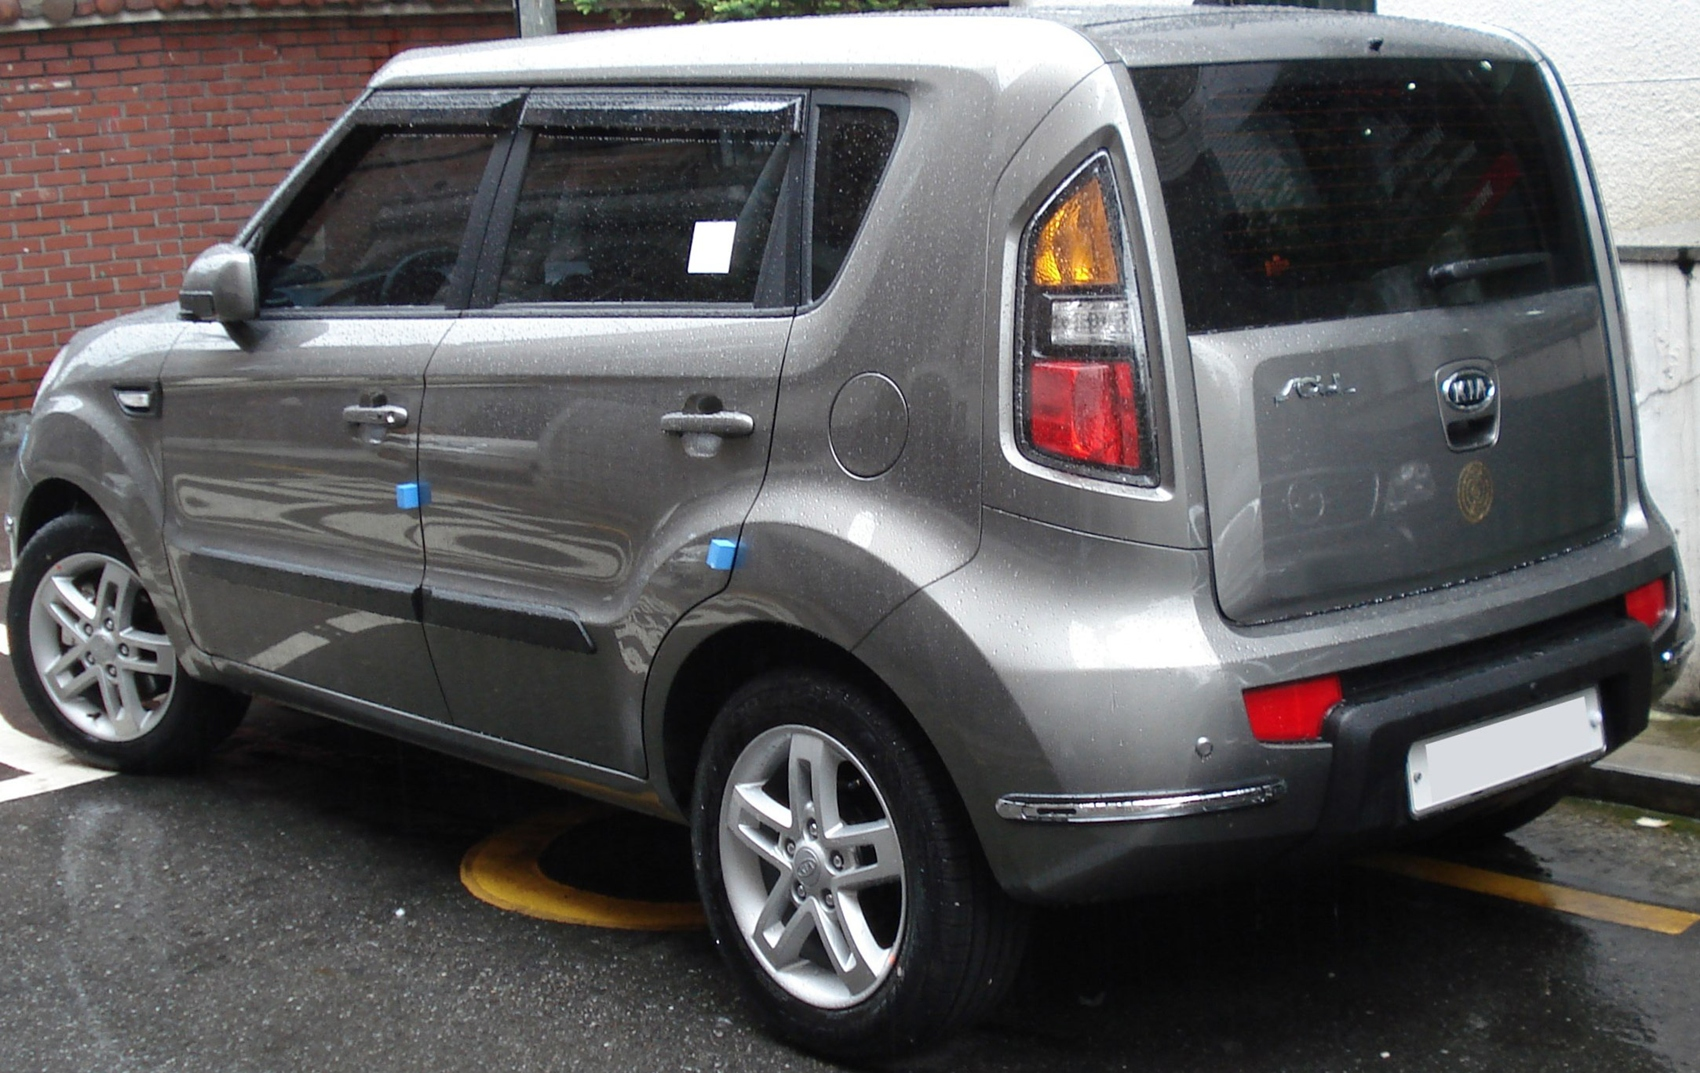 File:20100812 kia soul 002.jpg - Wikimedia Commons